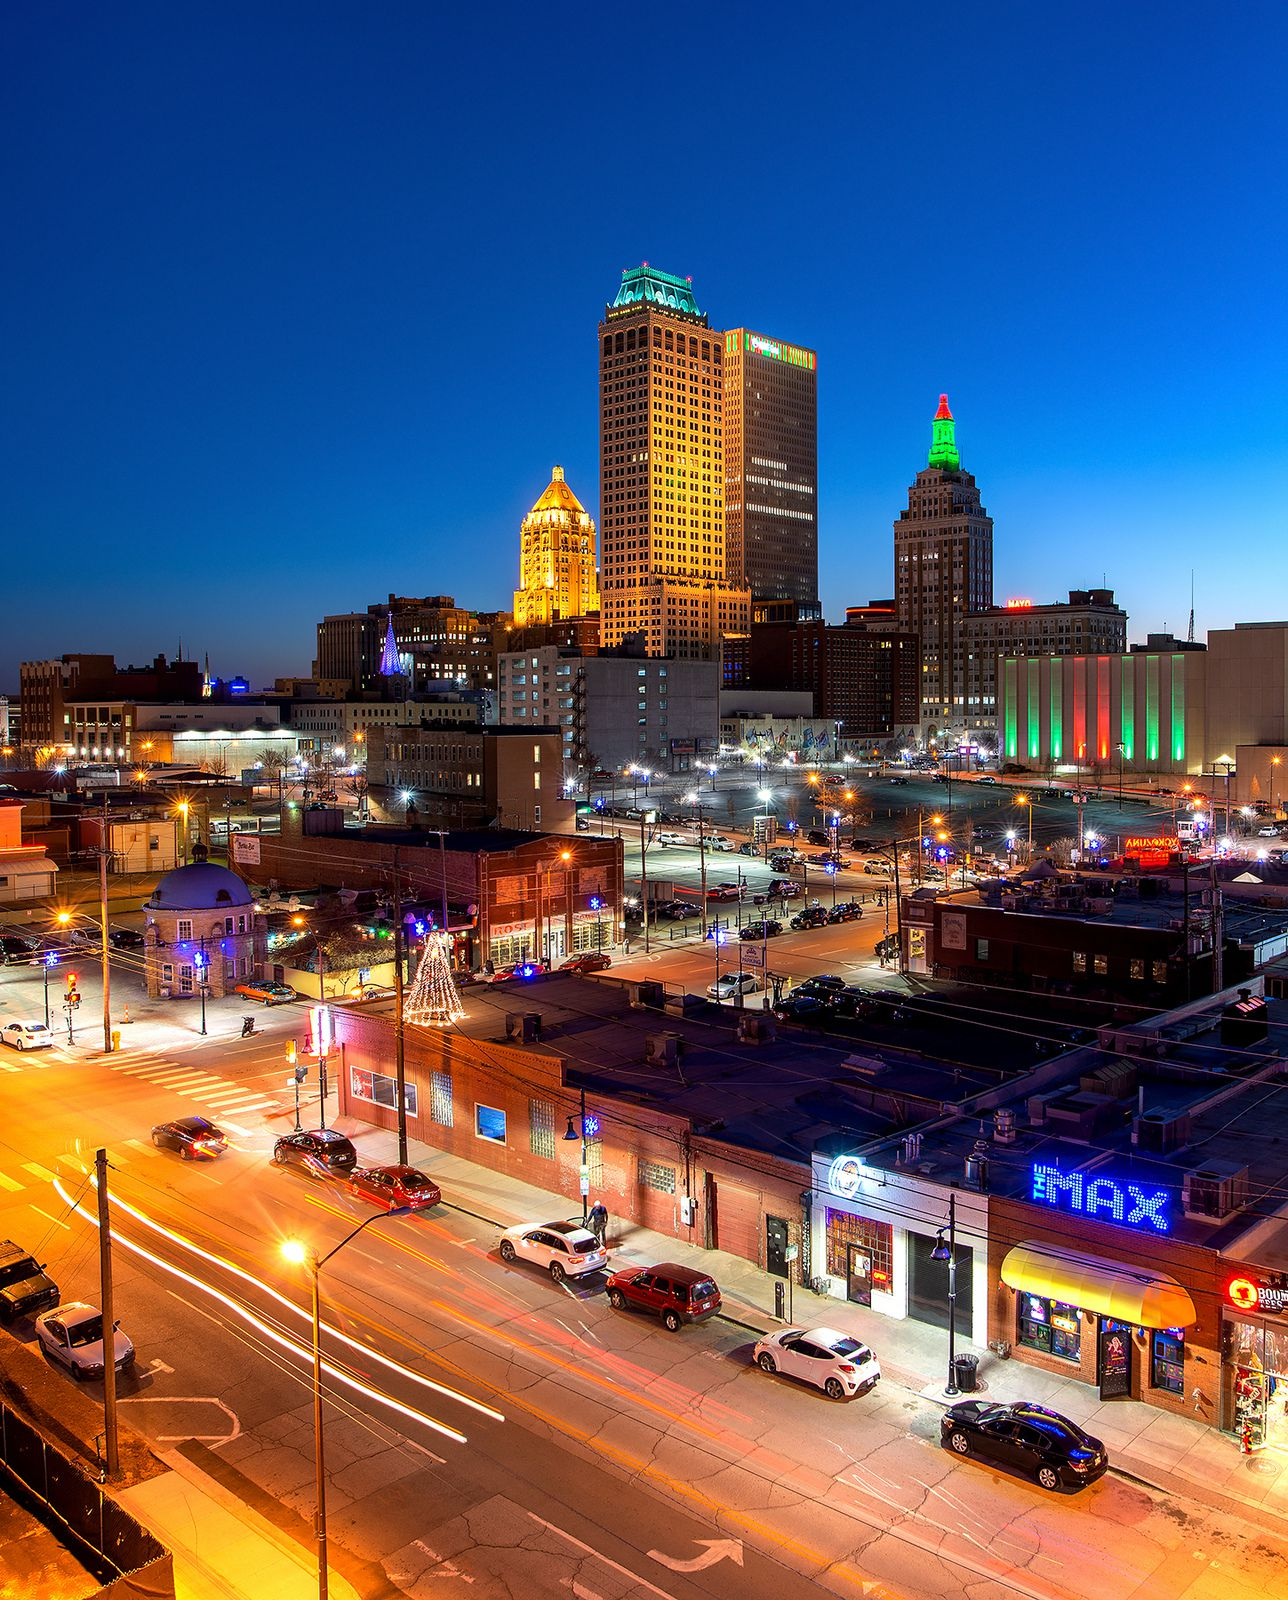 Tulsa city at night